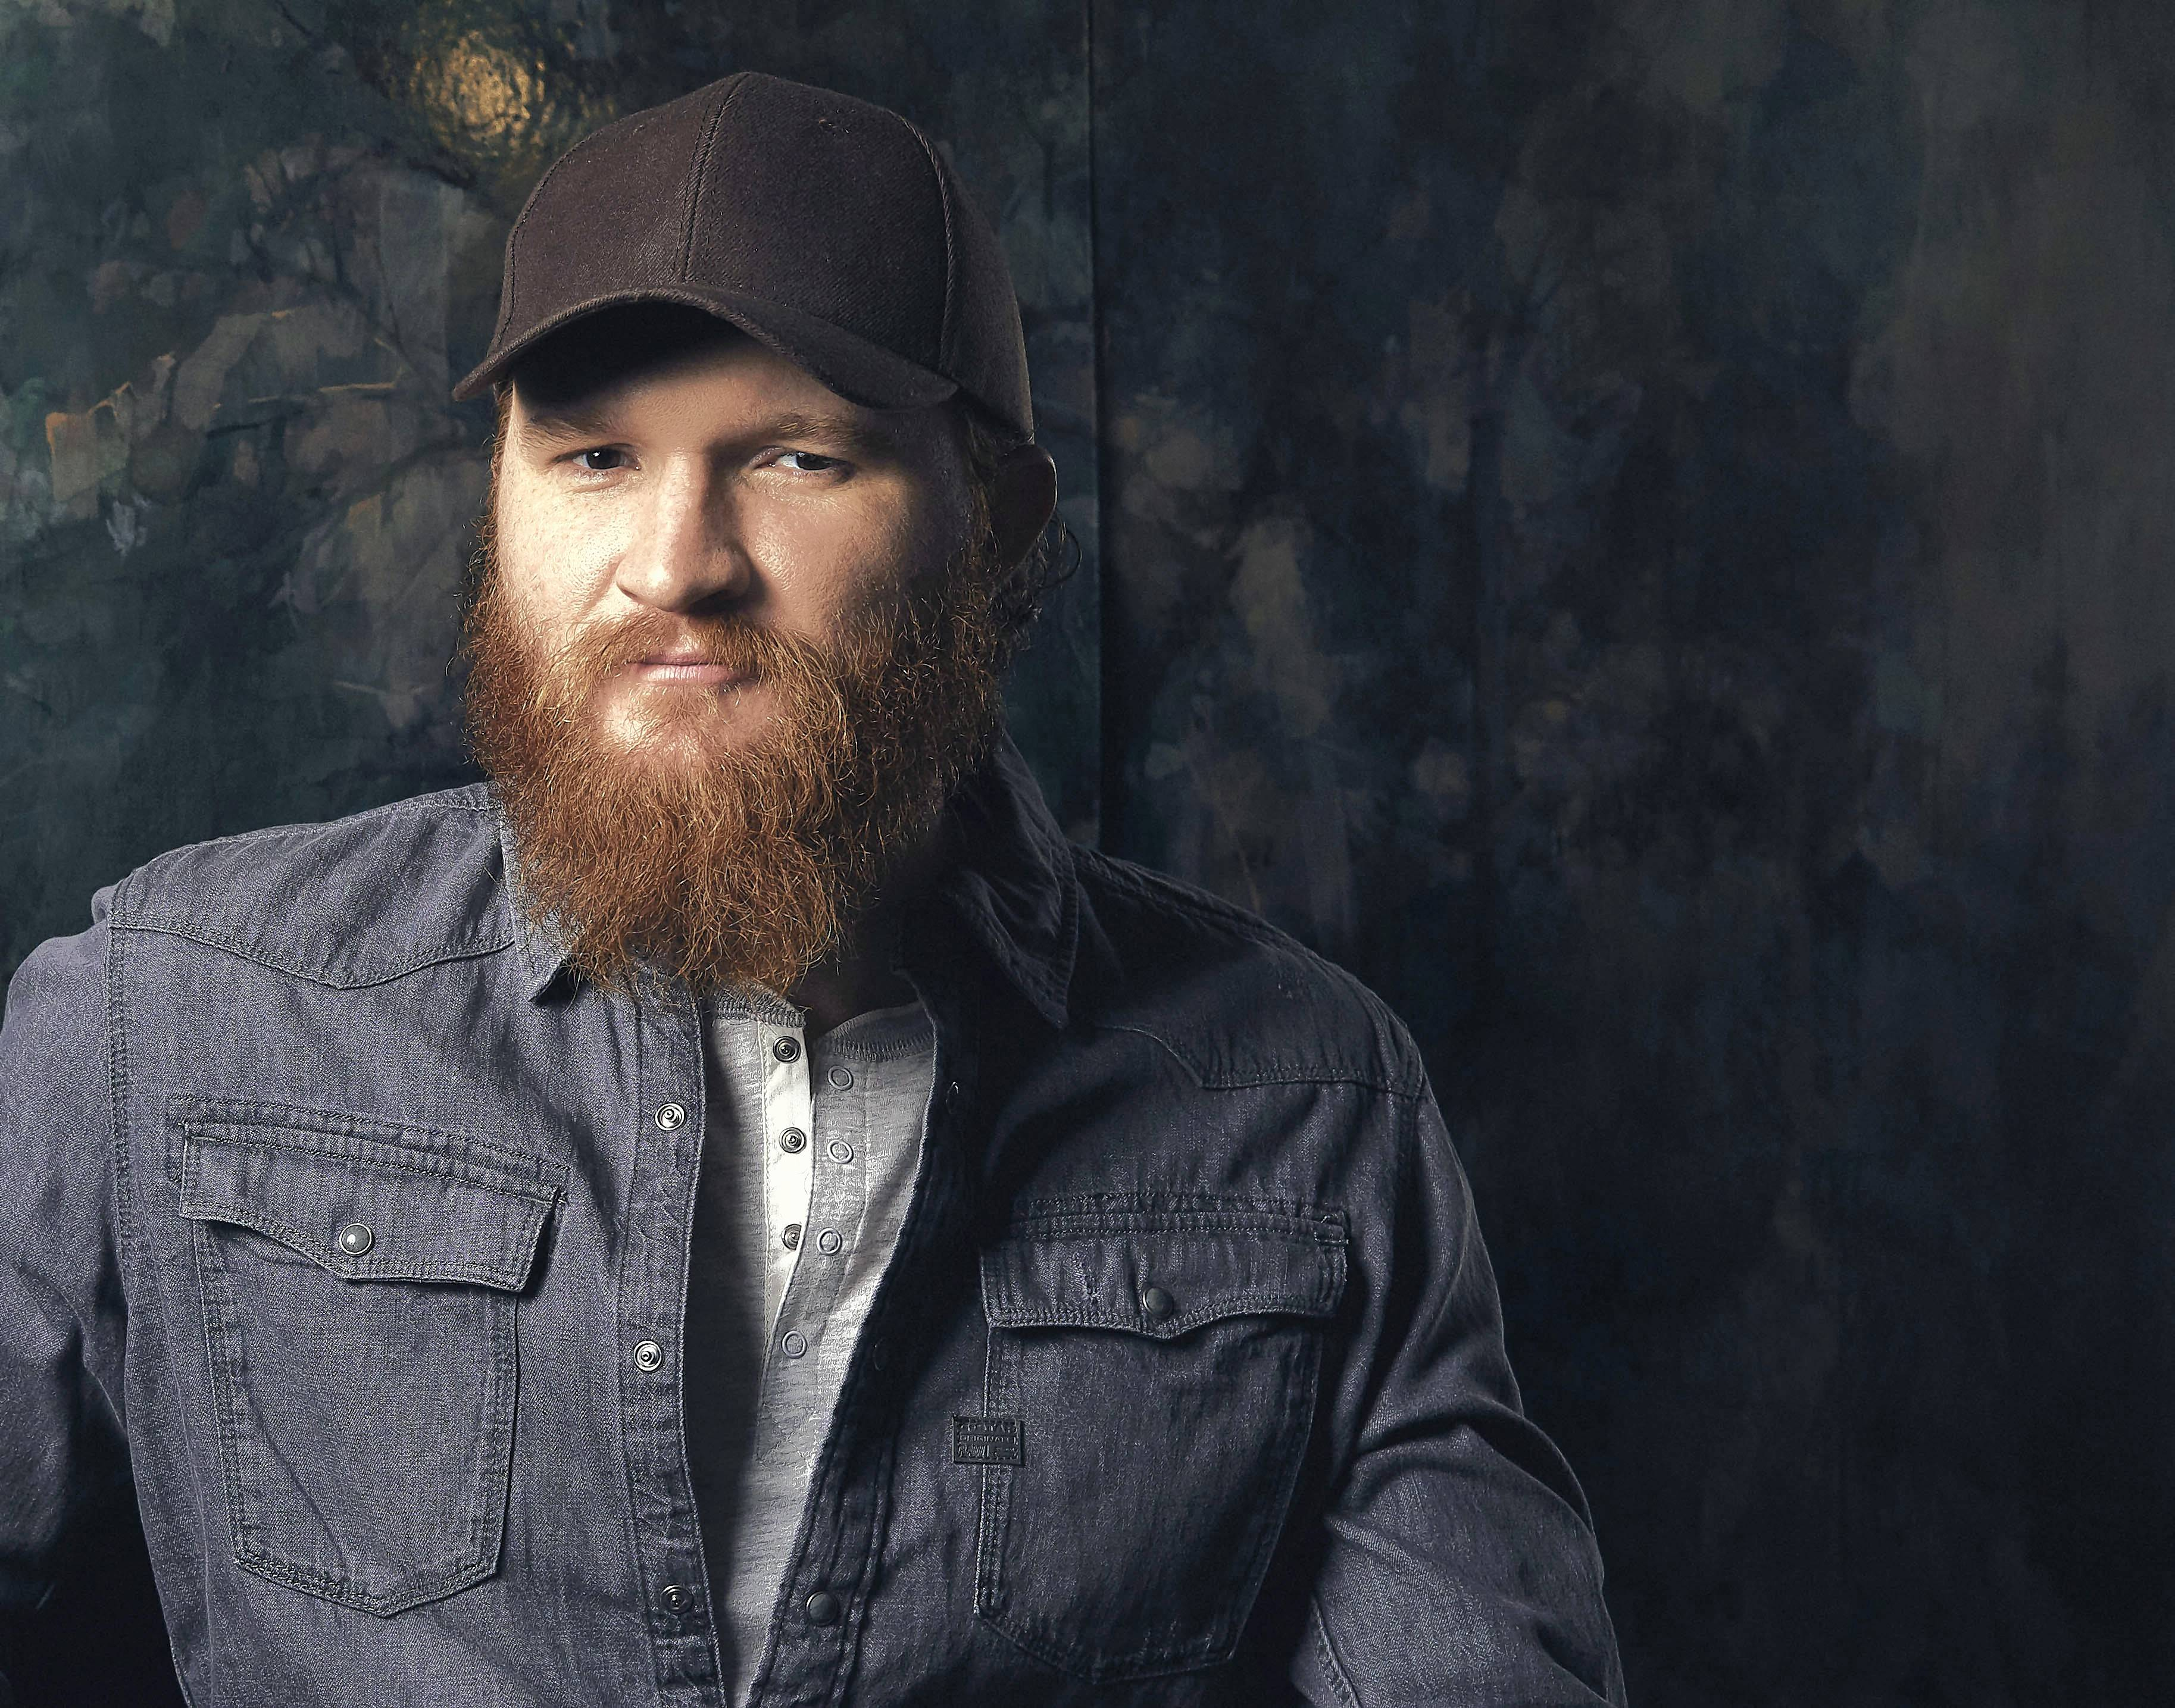 Grammy-nominated country artist Eric Paslay will perform at Arlington International Racecourse Saturday during Million Day festivities.